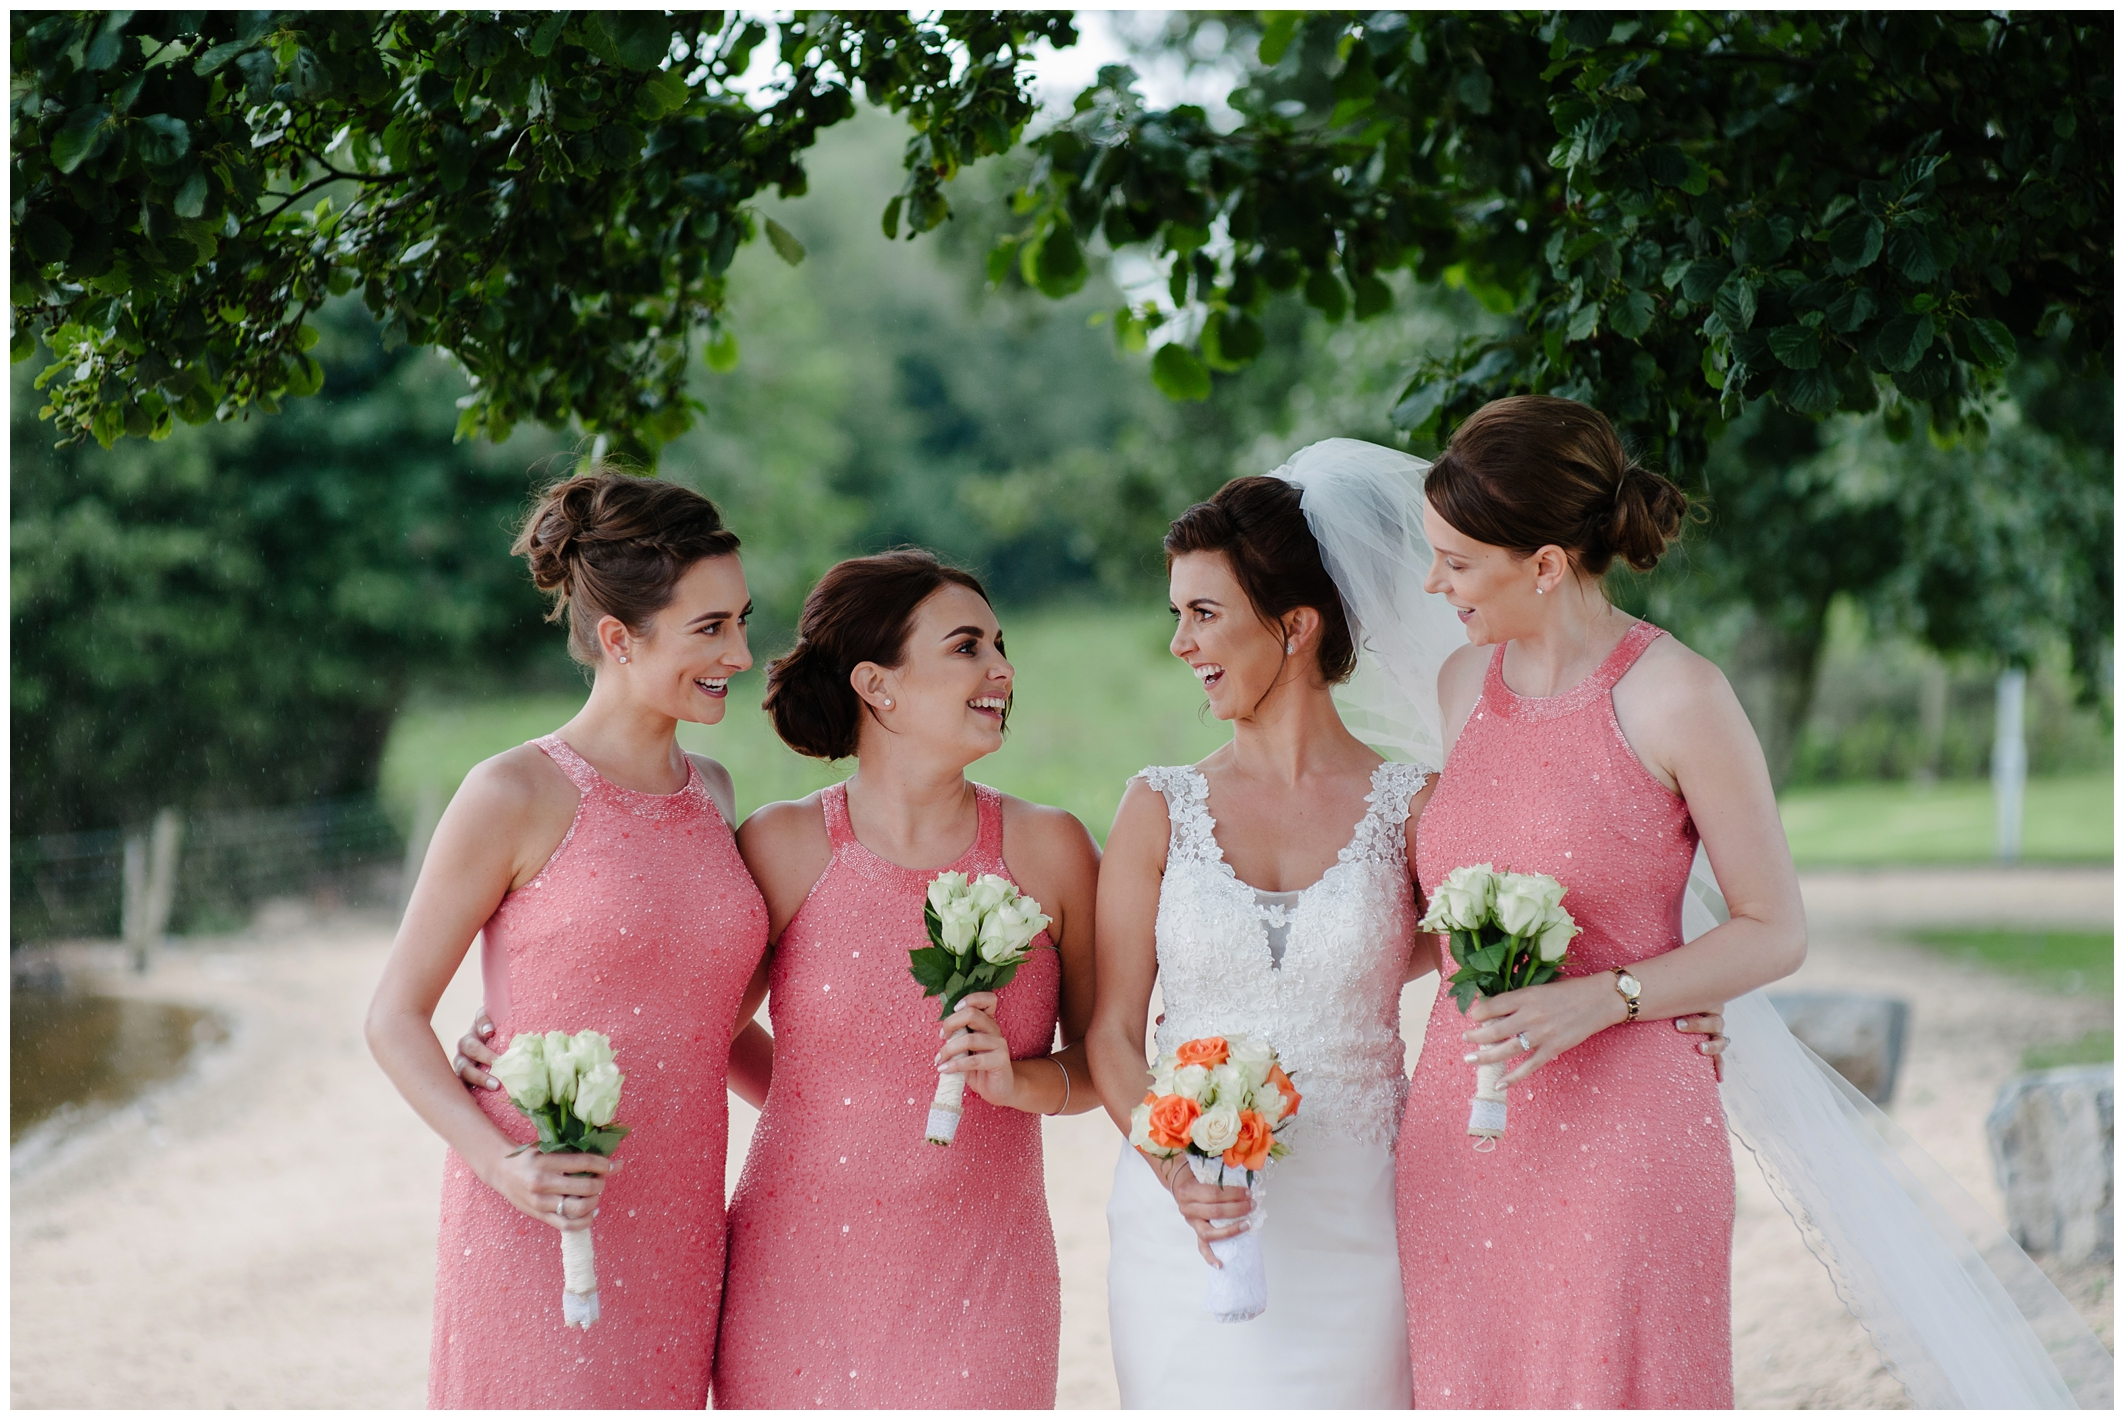 Lynsey_Andy_Rossharbour_Fermanagh_wedding_jude_browne_photography_0119.jpg